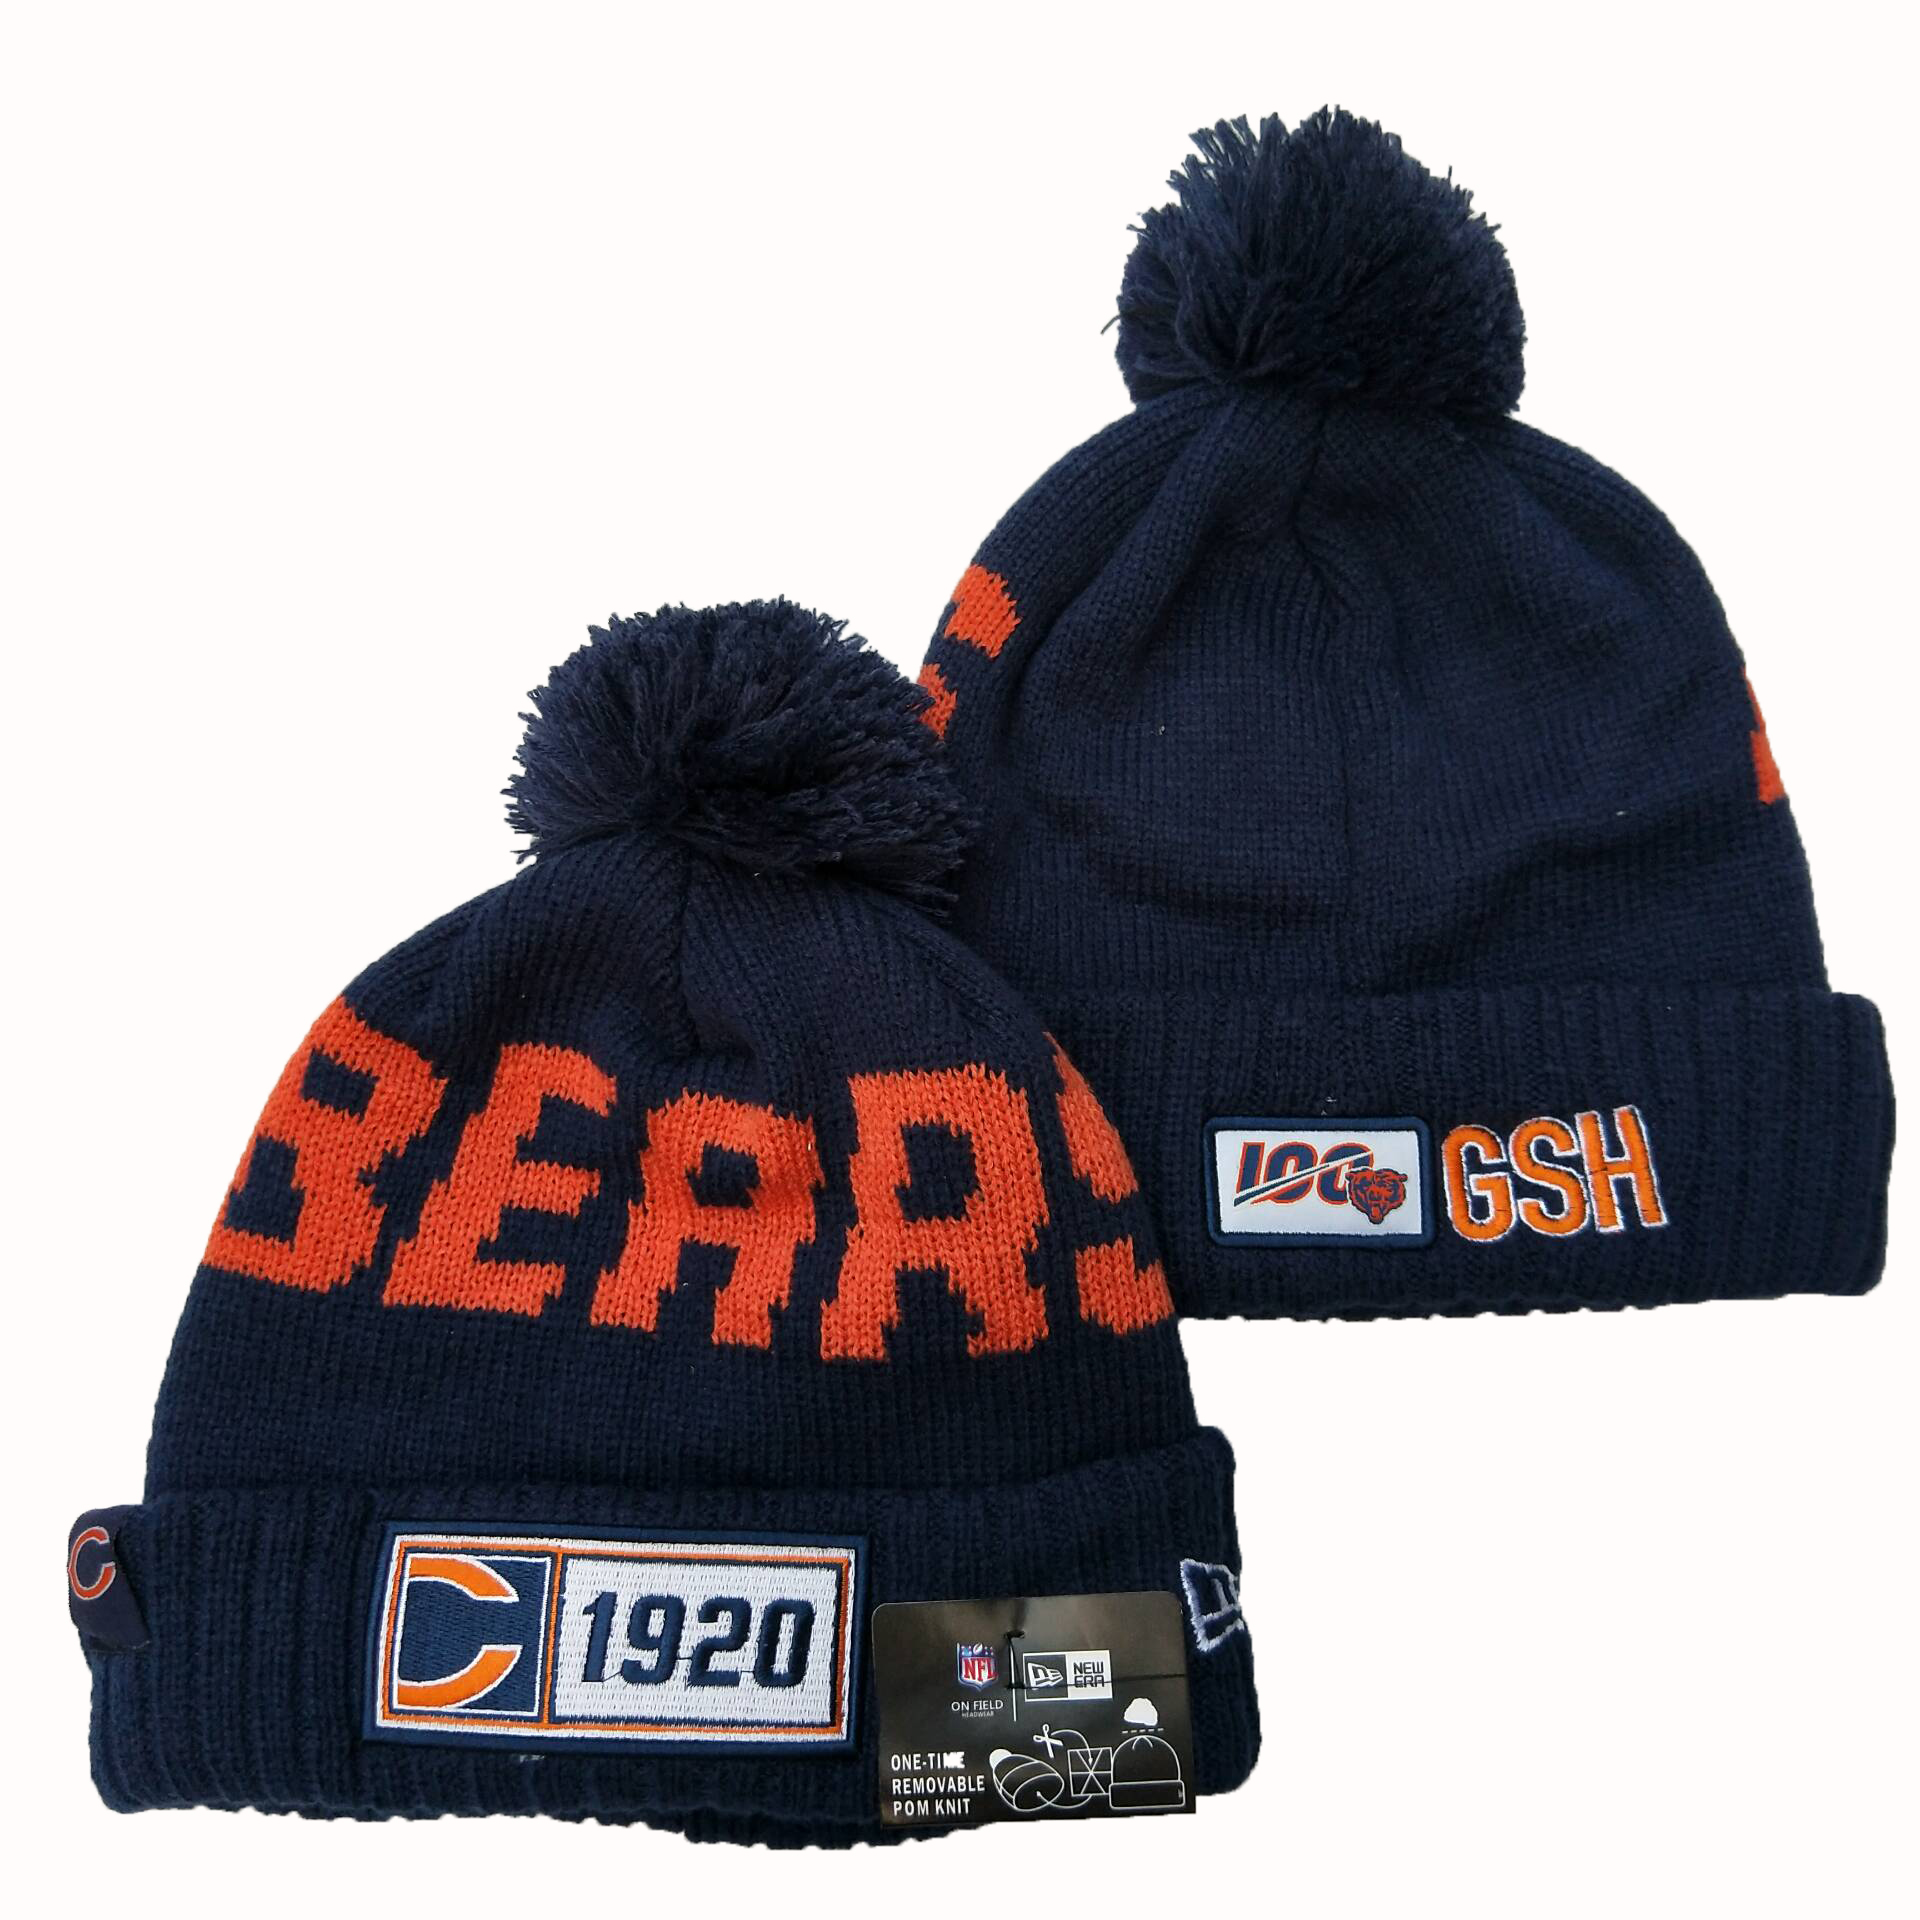 Bears Team Logo Navy 100th Season Pom Knit Hat YD